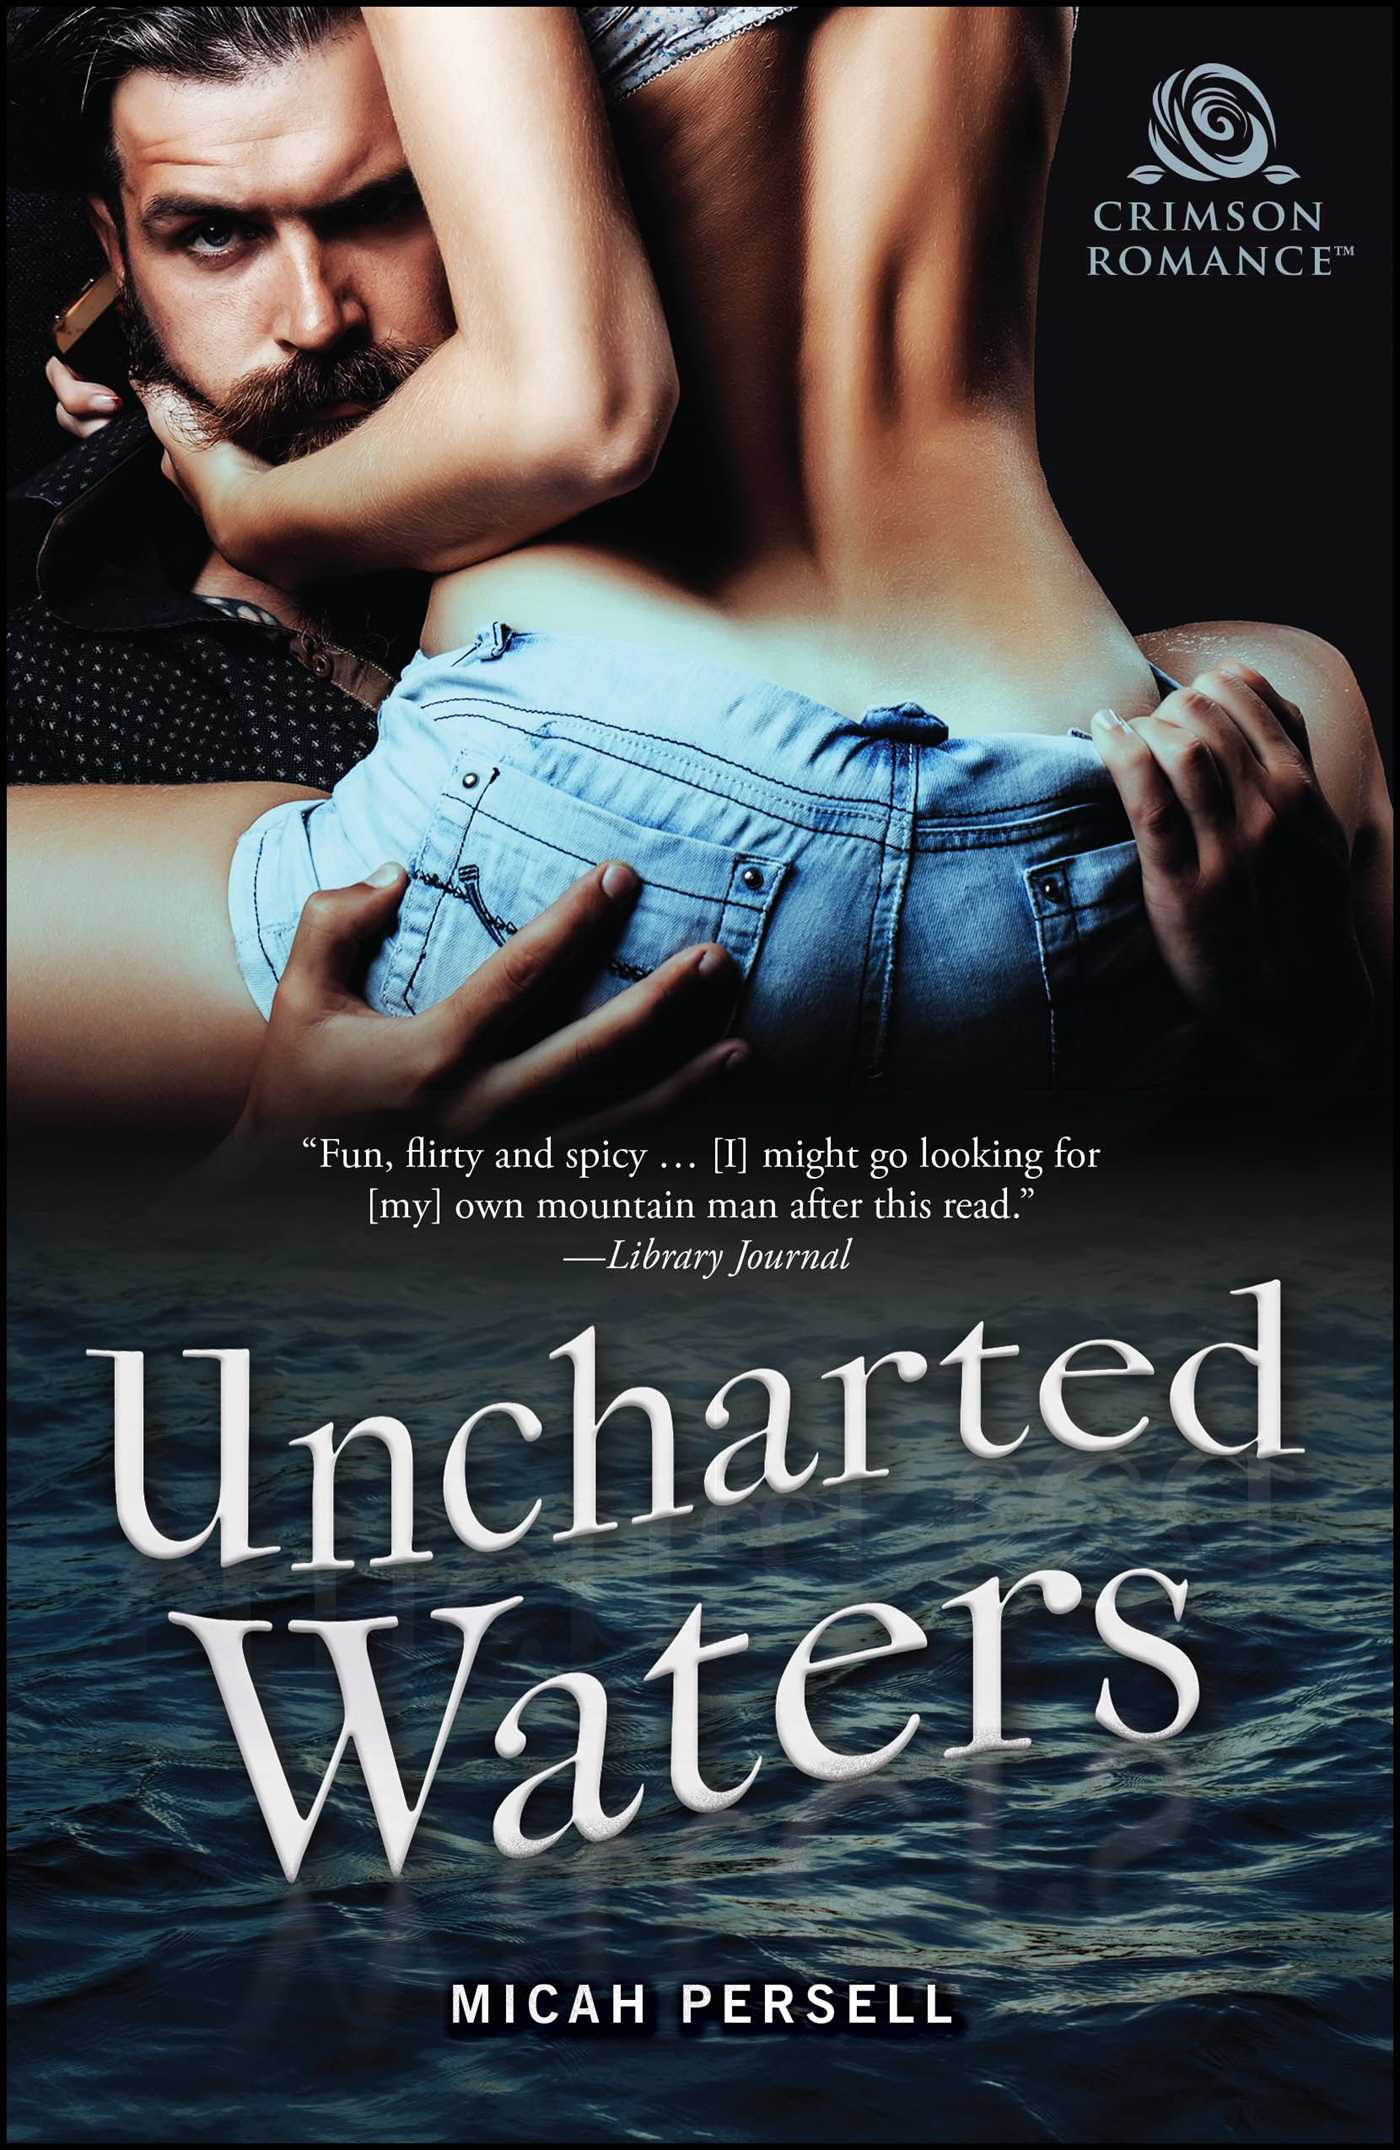 Uncharted waters 9781507207420 hr